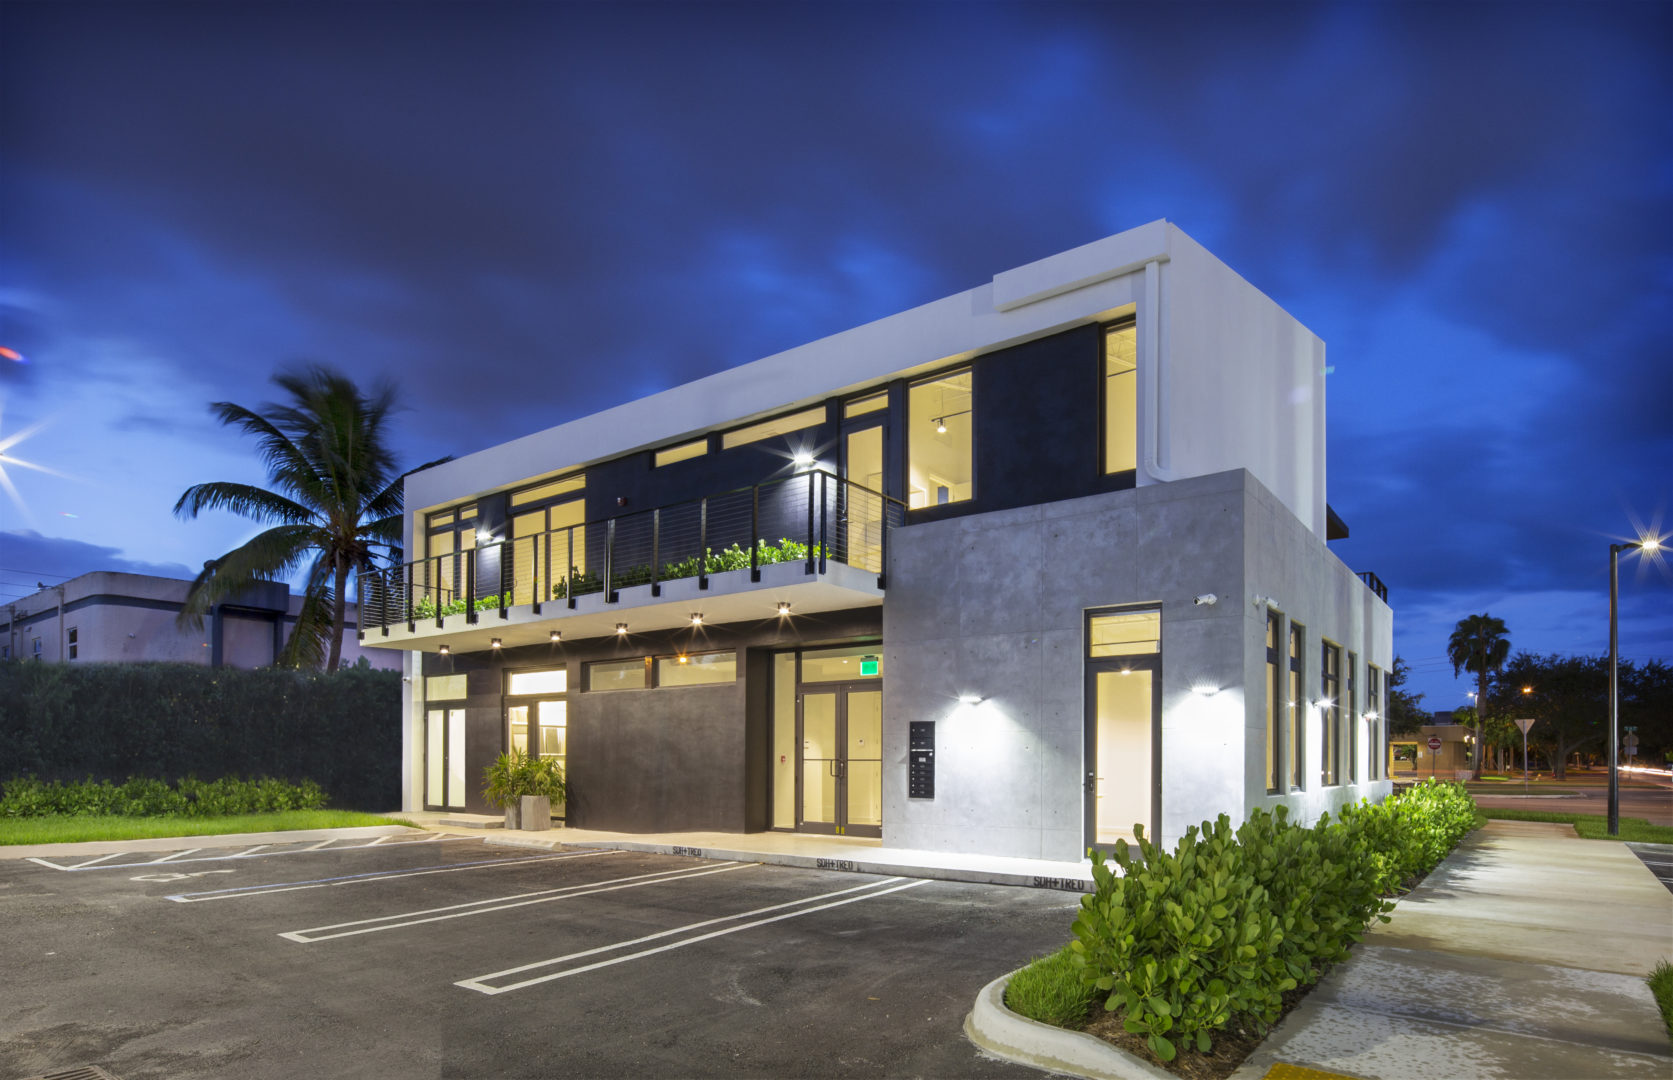 Office Building Commercial Treo SDH North Miami Beach Florida Construction modern parking asphalt concrete ramp